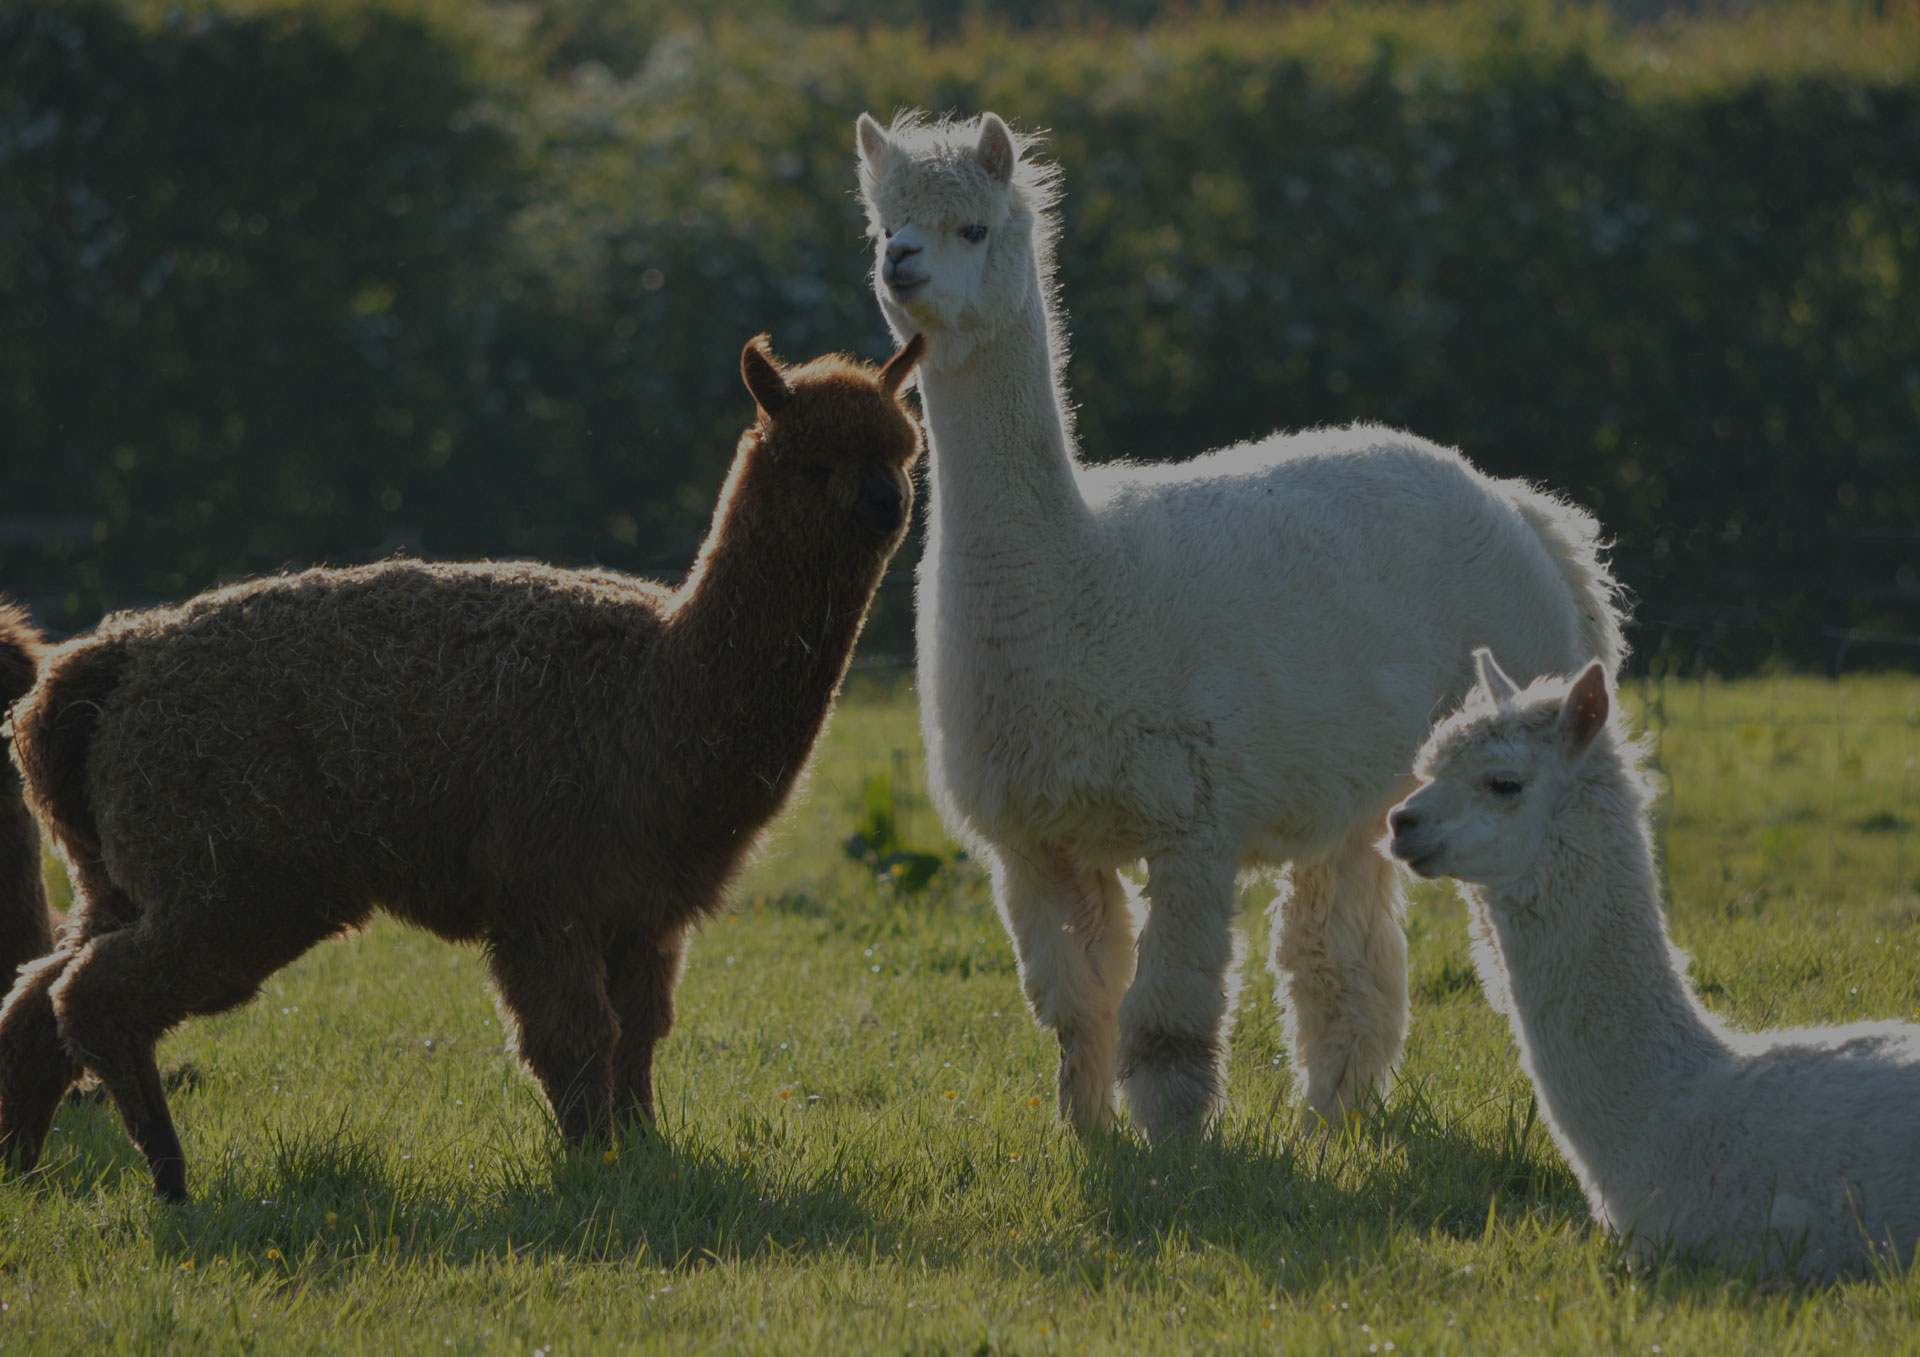 Three Llamas in a Field